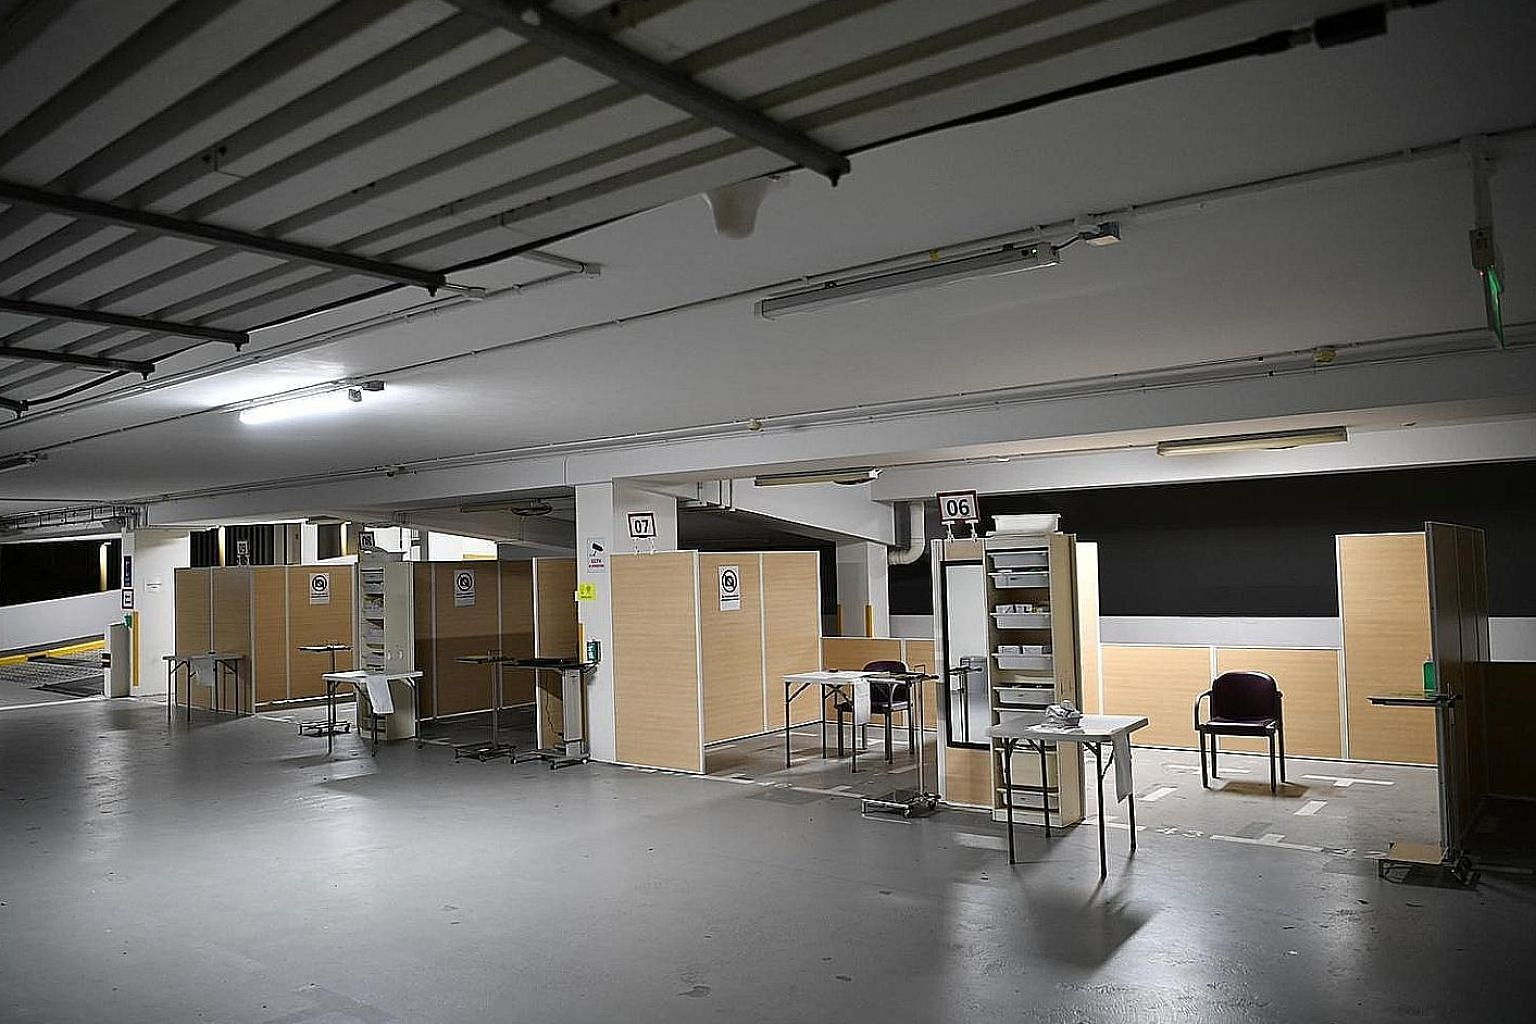 Singapore General Hospital is converting part of a multi-storey carpark into a fever screening area to help manage the growing number of patients infected with the coronavirus. ST PHOTO: ARIFFIN JAMAR